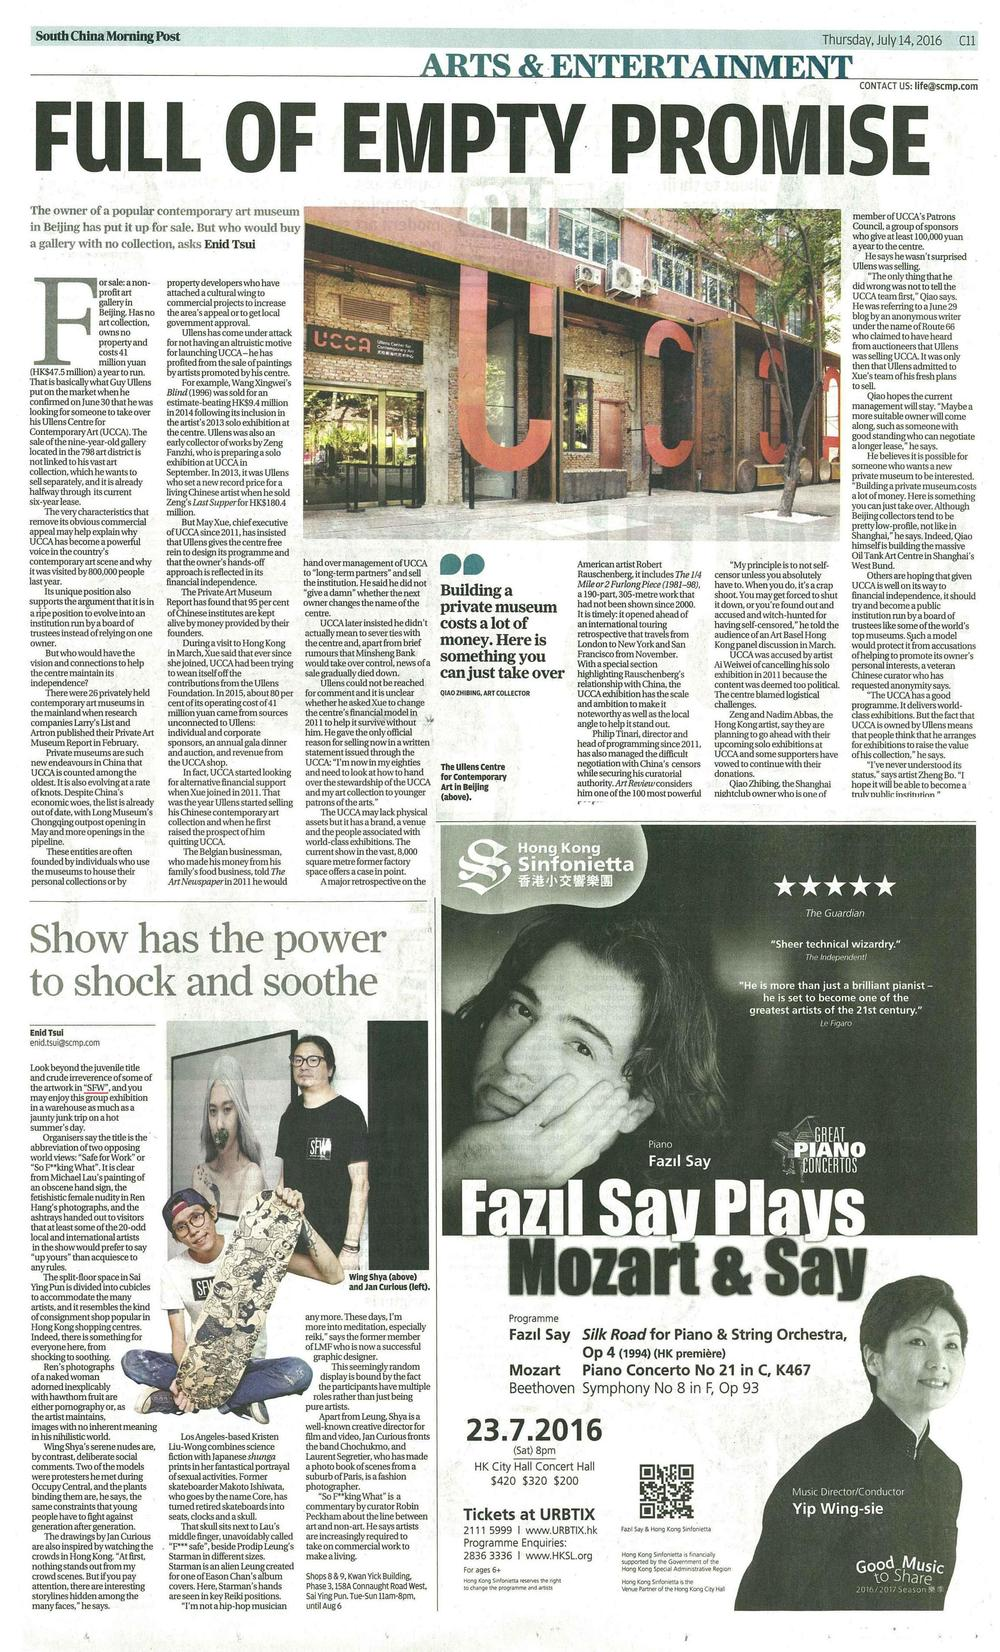 South China Morning Post - July 14th, 2016